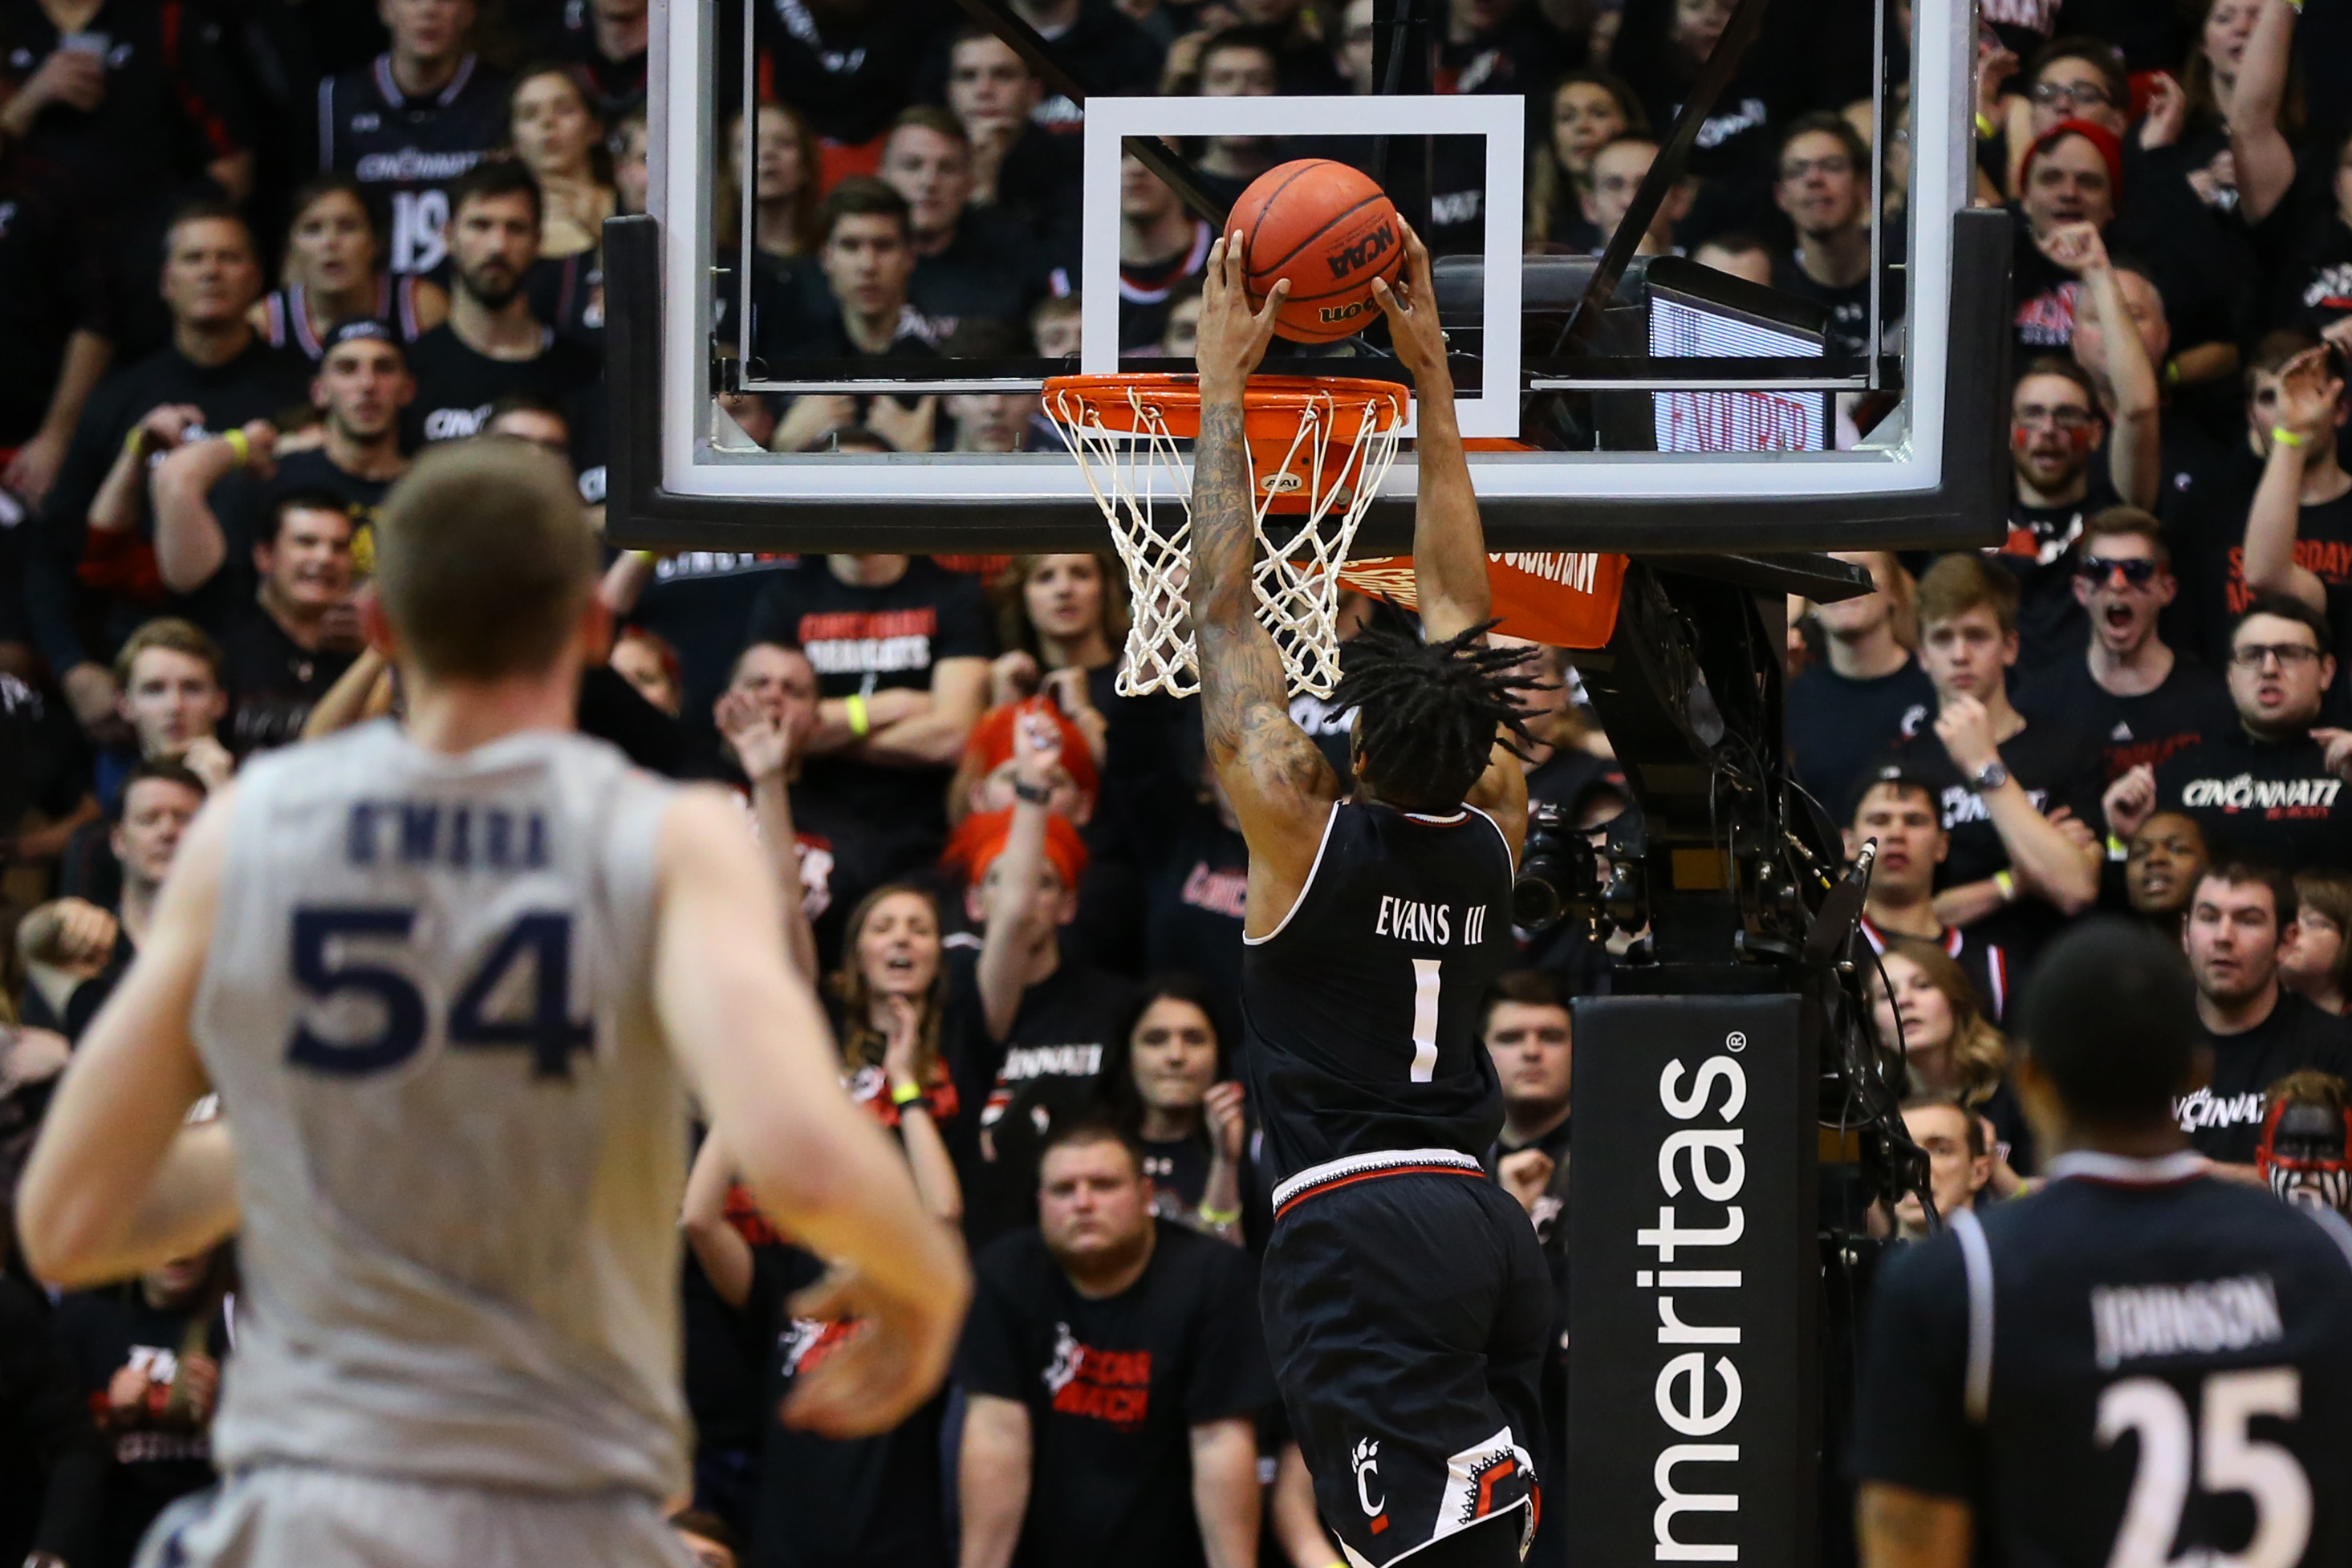 Jan 26, 2017; Cincinnati, OH, USA; Cincinnati Bearcats guard Jacob Evans (1) dunks the ball against the Xavier Musketeers in the second half at Fifth Third Arena. The Bearcats won 86-78. Mandatory Credit: Aaron Doster-USA TODAY Sports